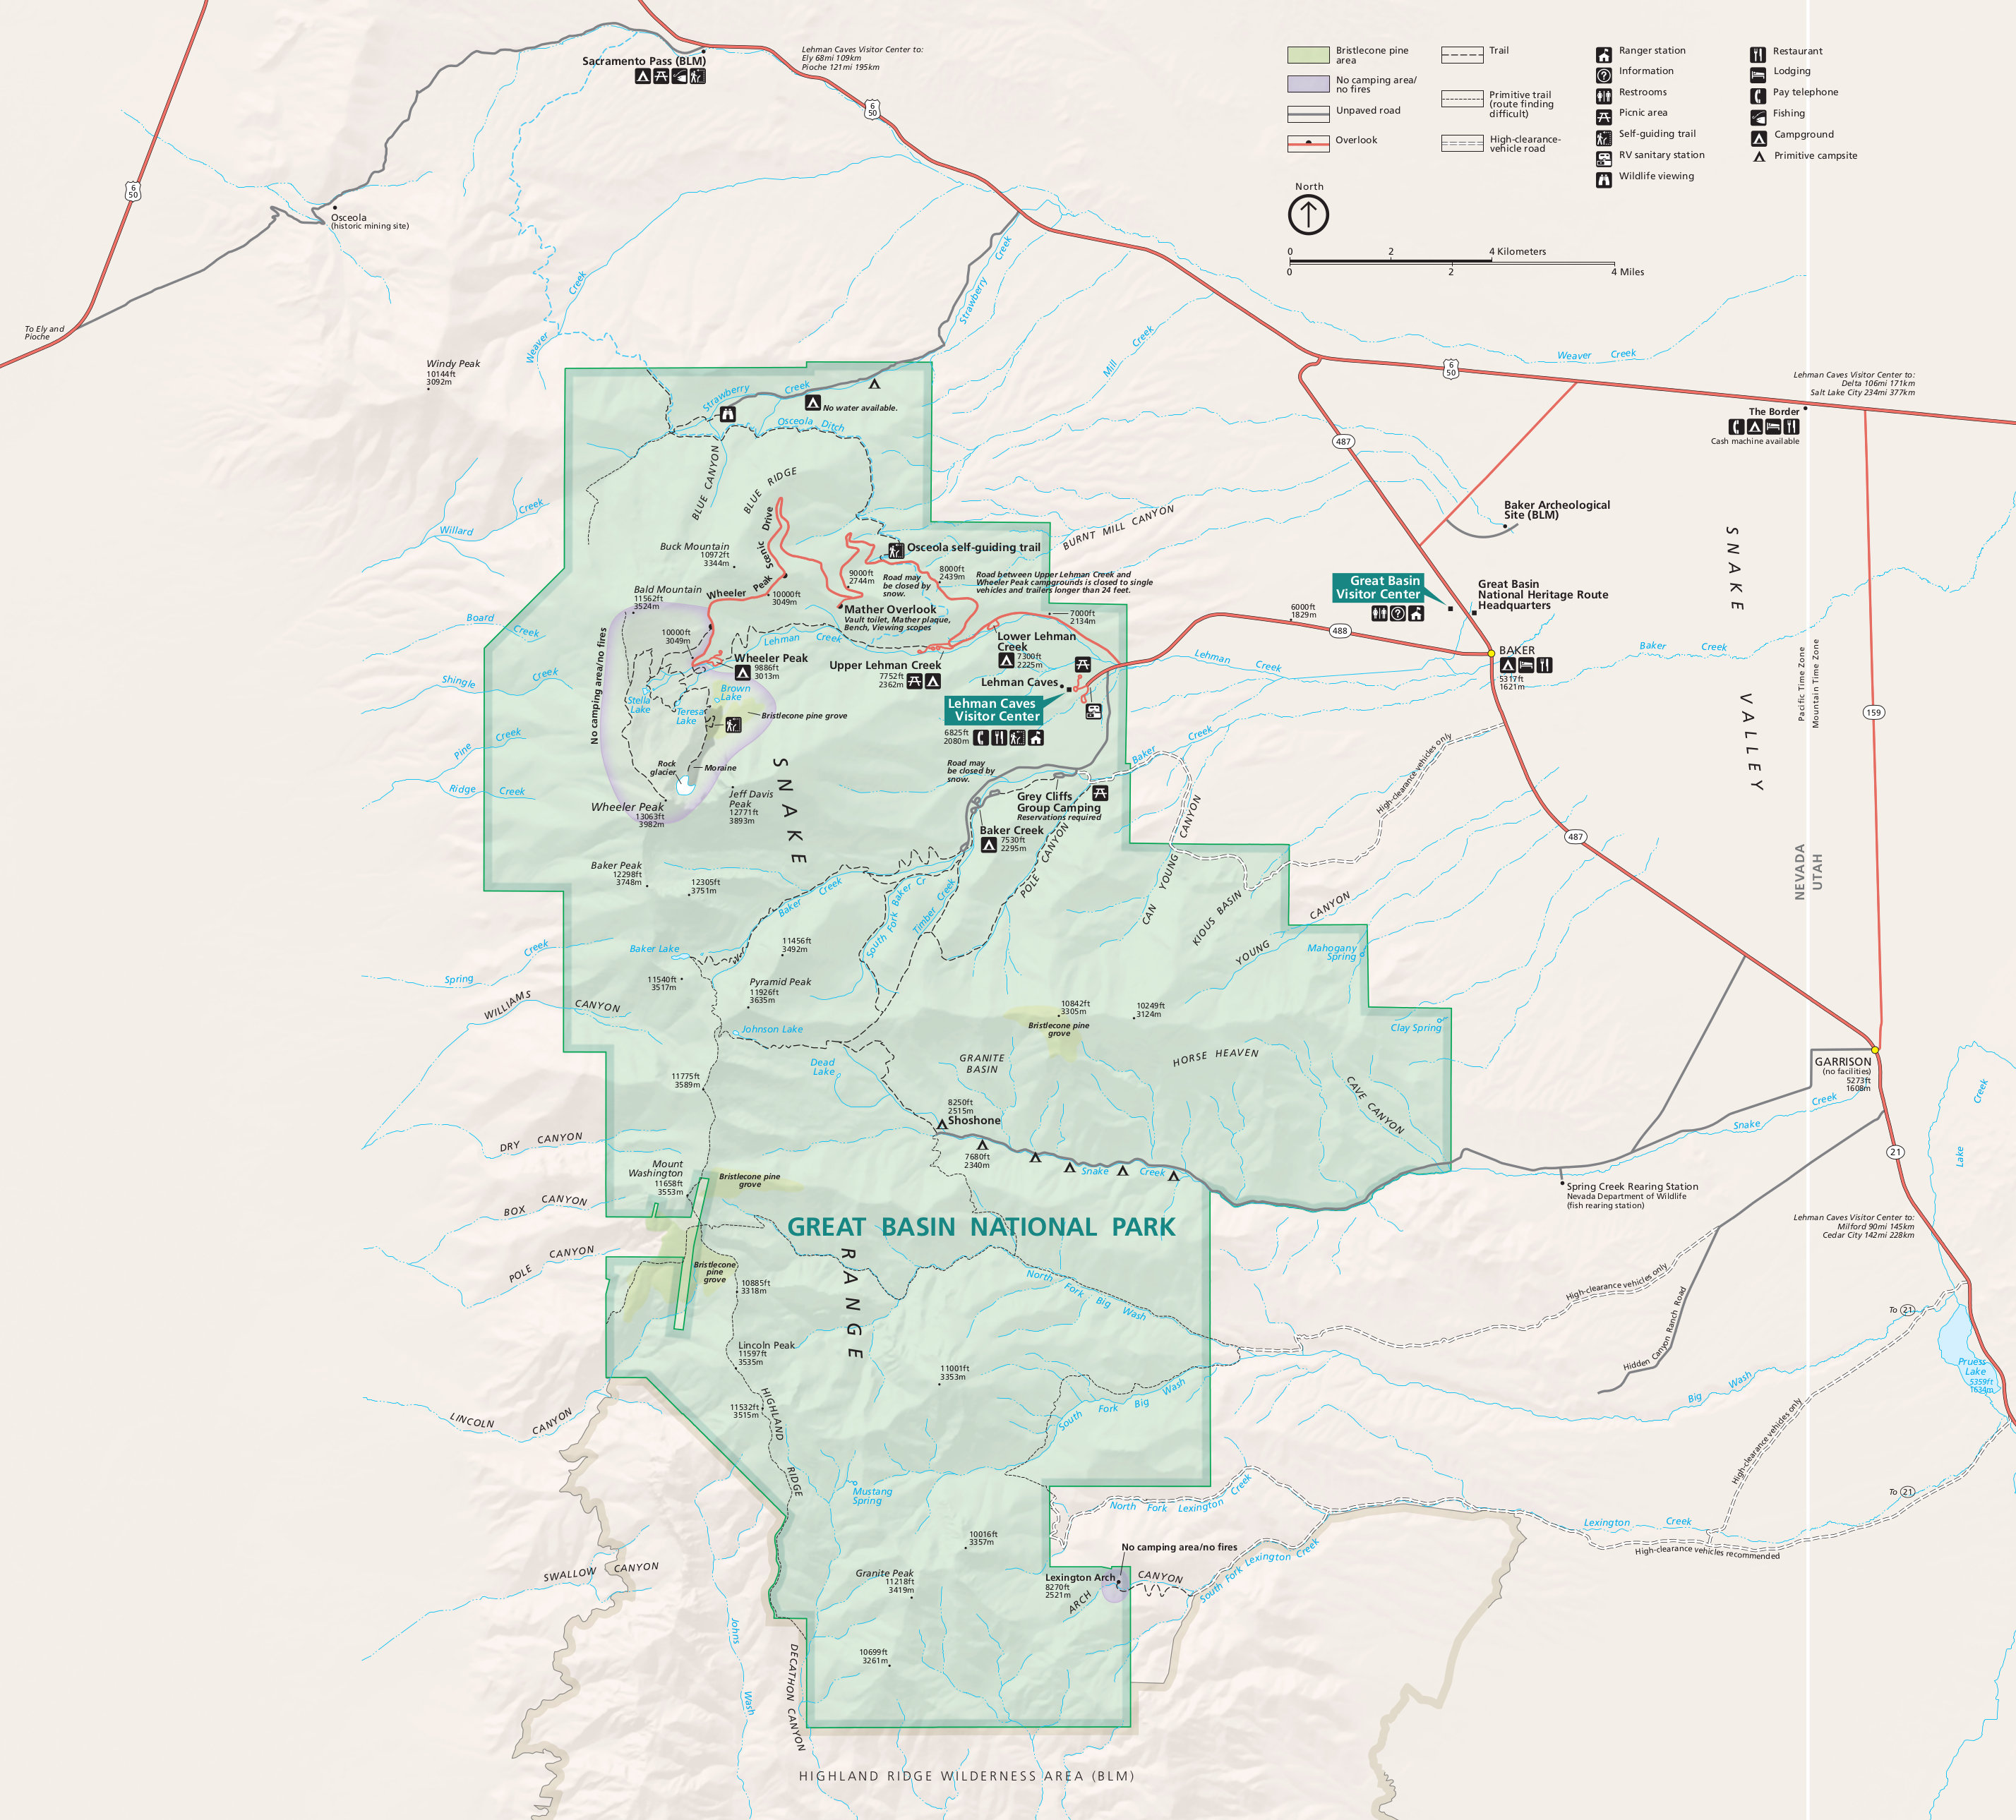 Great Basin National Park Map Great Basin Maps | NPMaps.  just free maps, period.